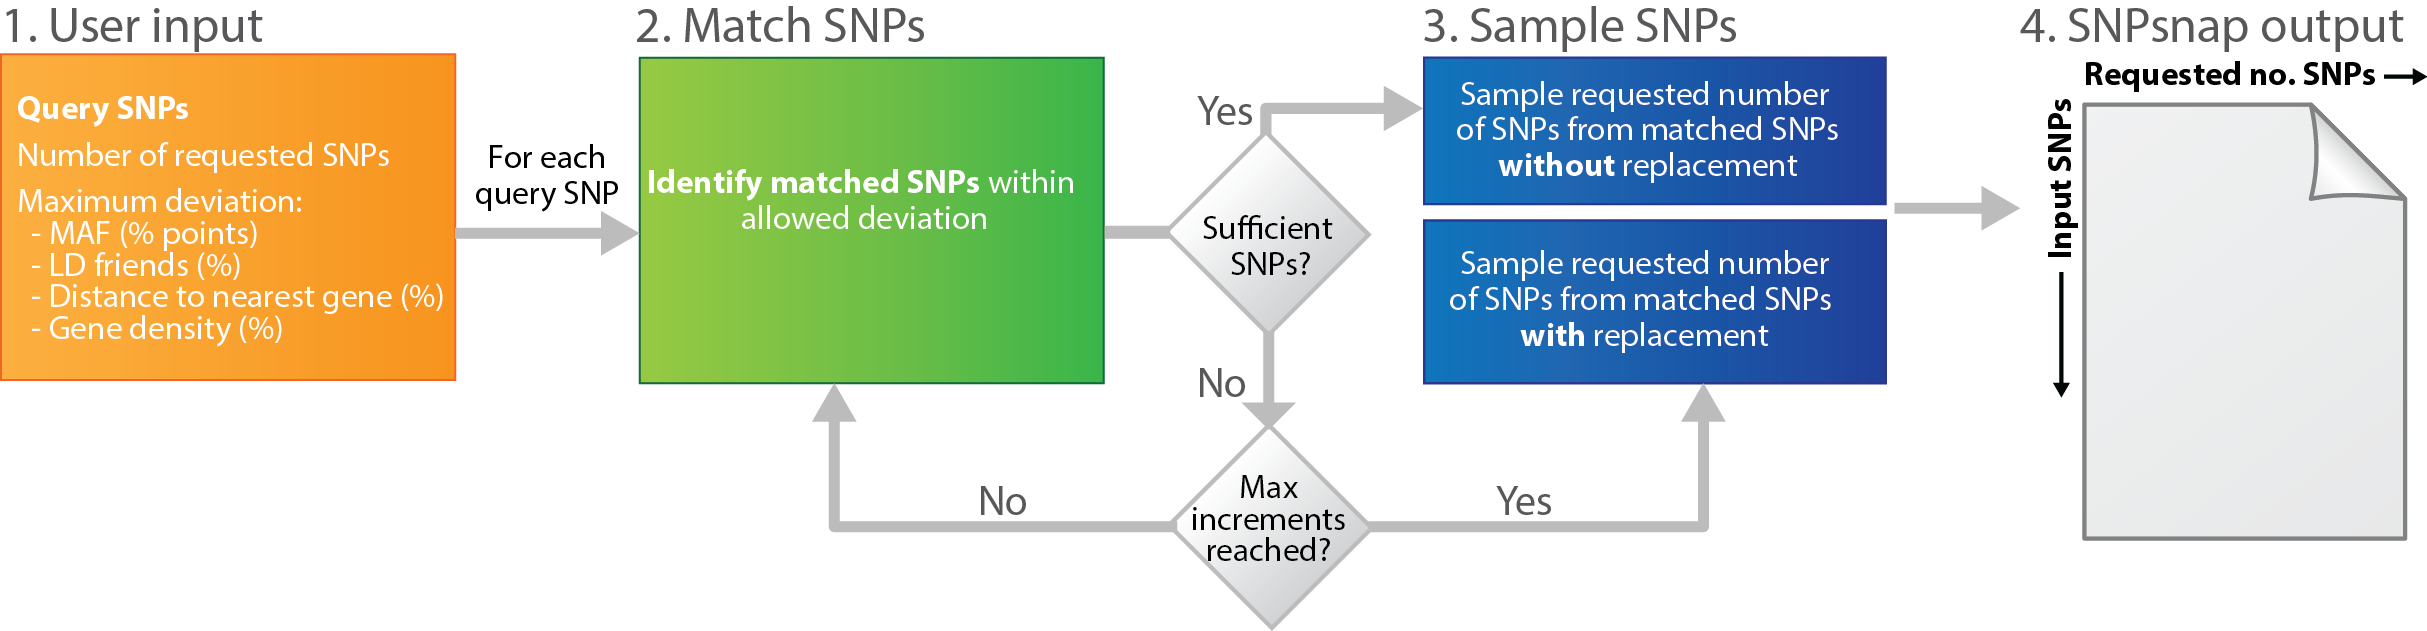 The Snpsnap Algorithm Identifies Matched Snps As Follows: